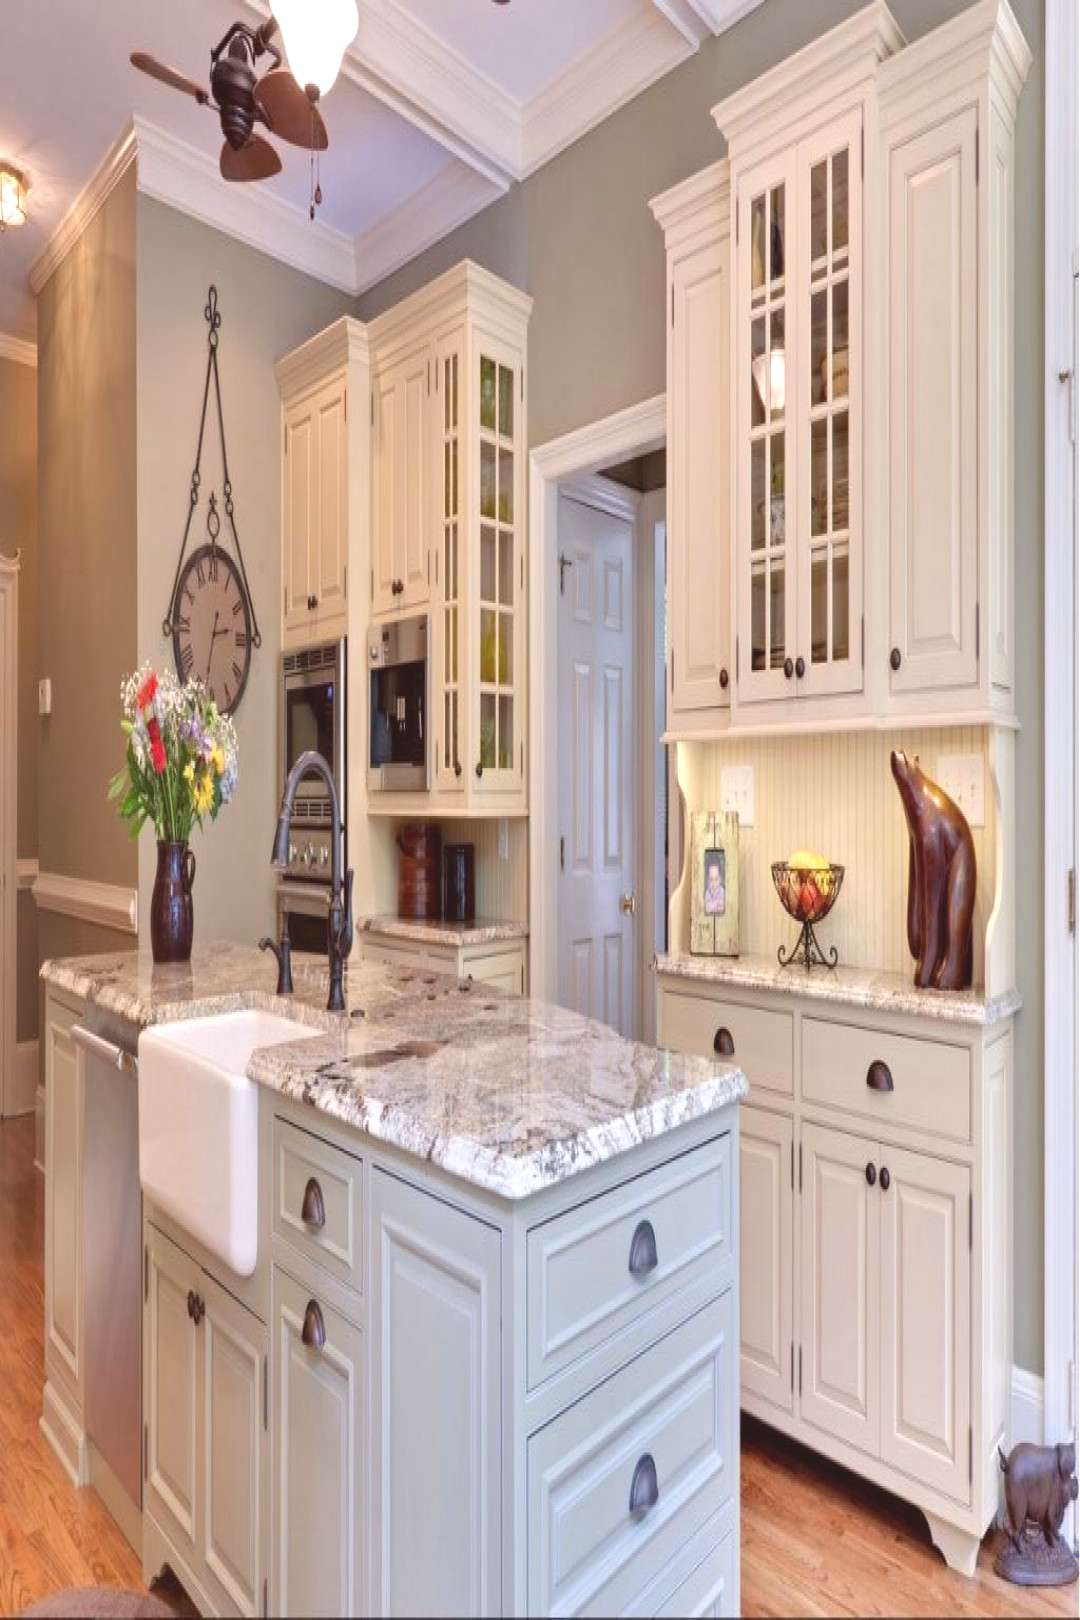 Country Home Decor 80 Beadboard Kitchen Cabinets deas Home Decor 80 Beadboard Kitchen Cabinets dea